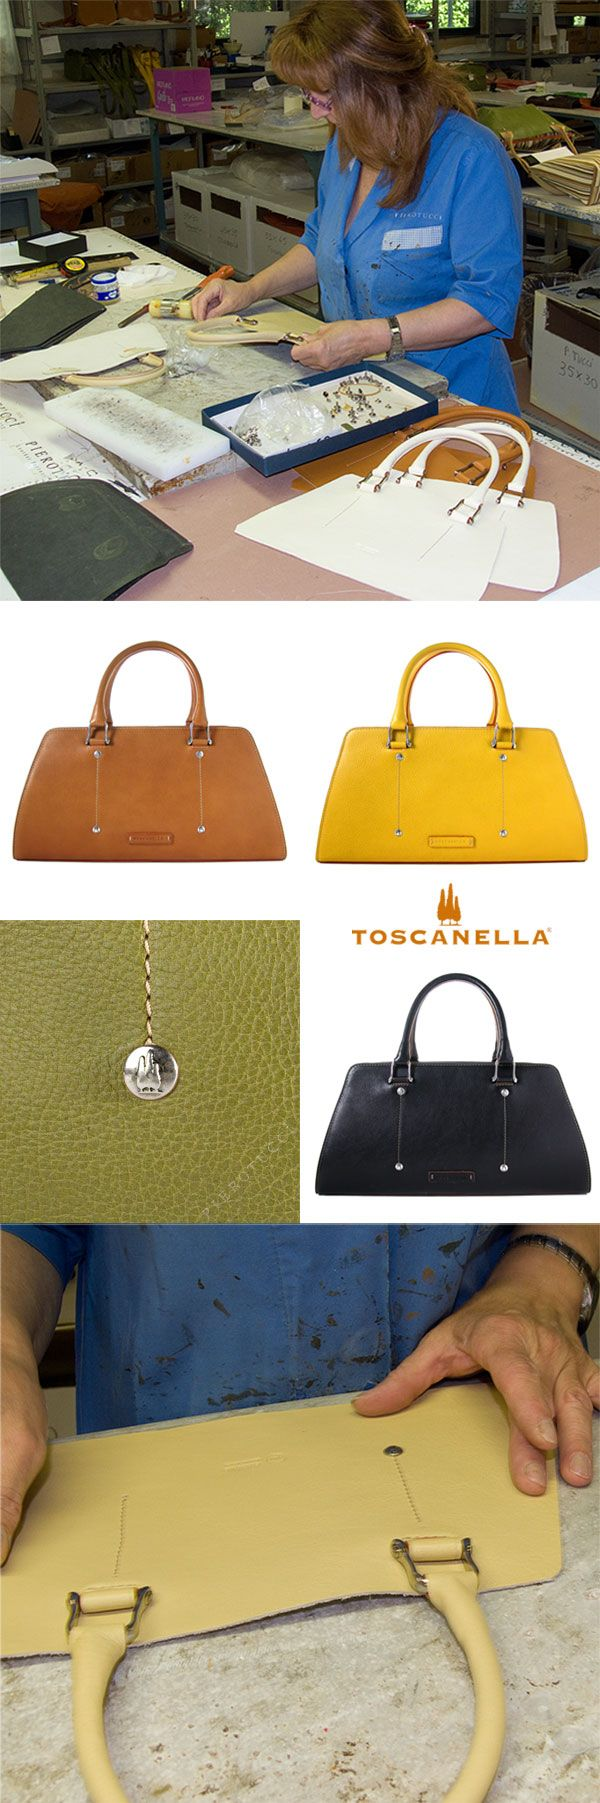 #Pierotucci Italian Leather Workshop.  Renza is putting in the signature cypress tree buttons on the #Toscanella Italian #LeatherHandbags , classic style.  http://www.pierotucci.com/bags/handbags/